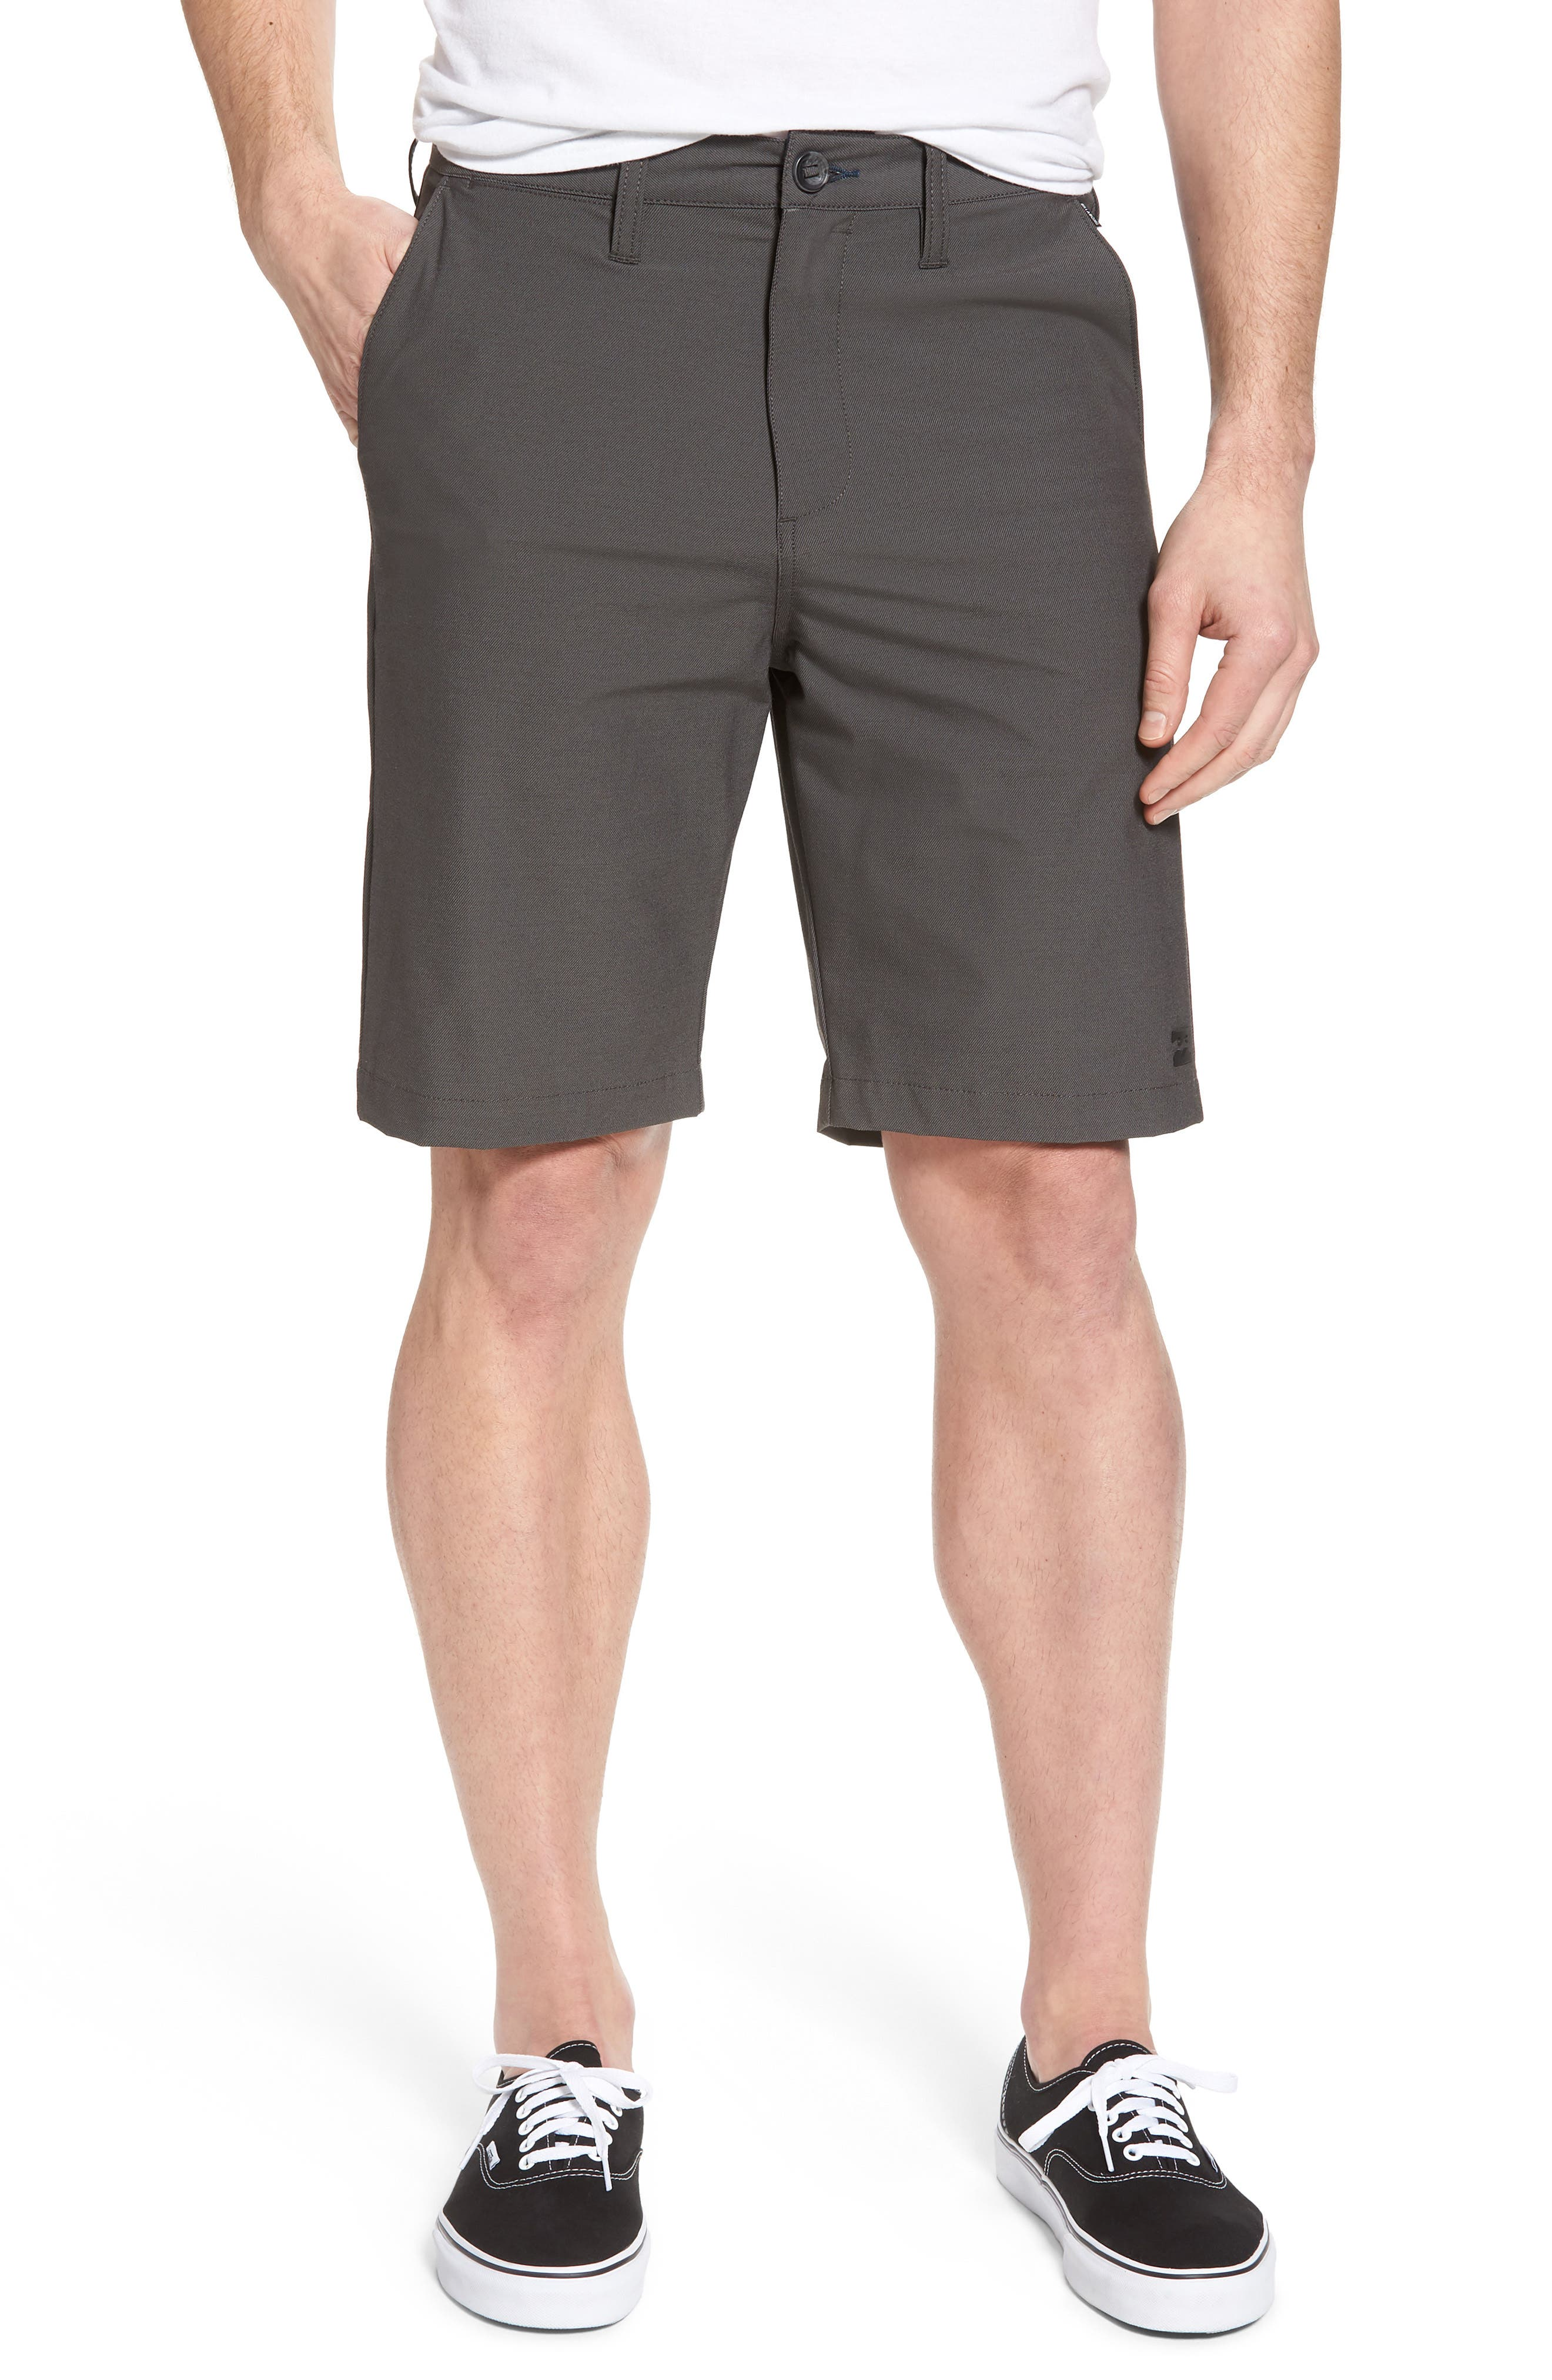 Crossfire X Submersible Twill Shorts,                         Main,                         color, 001